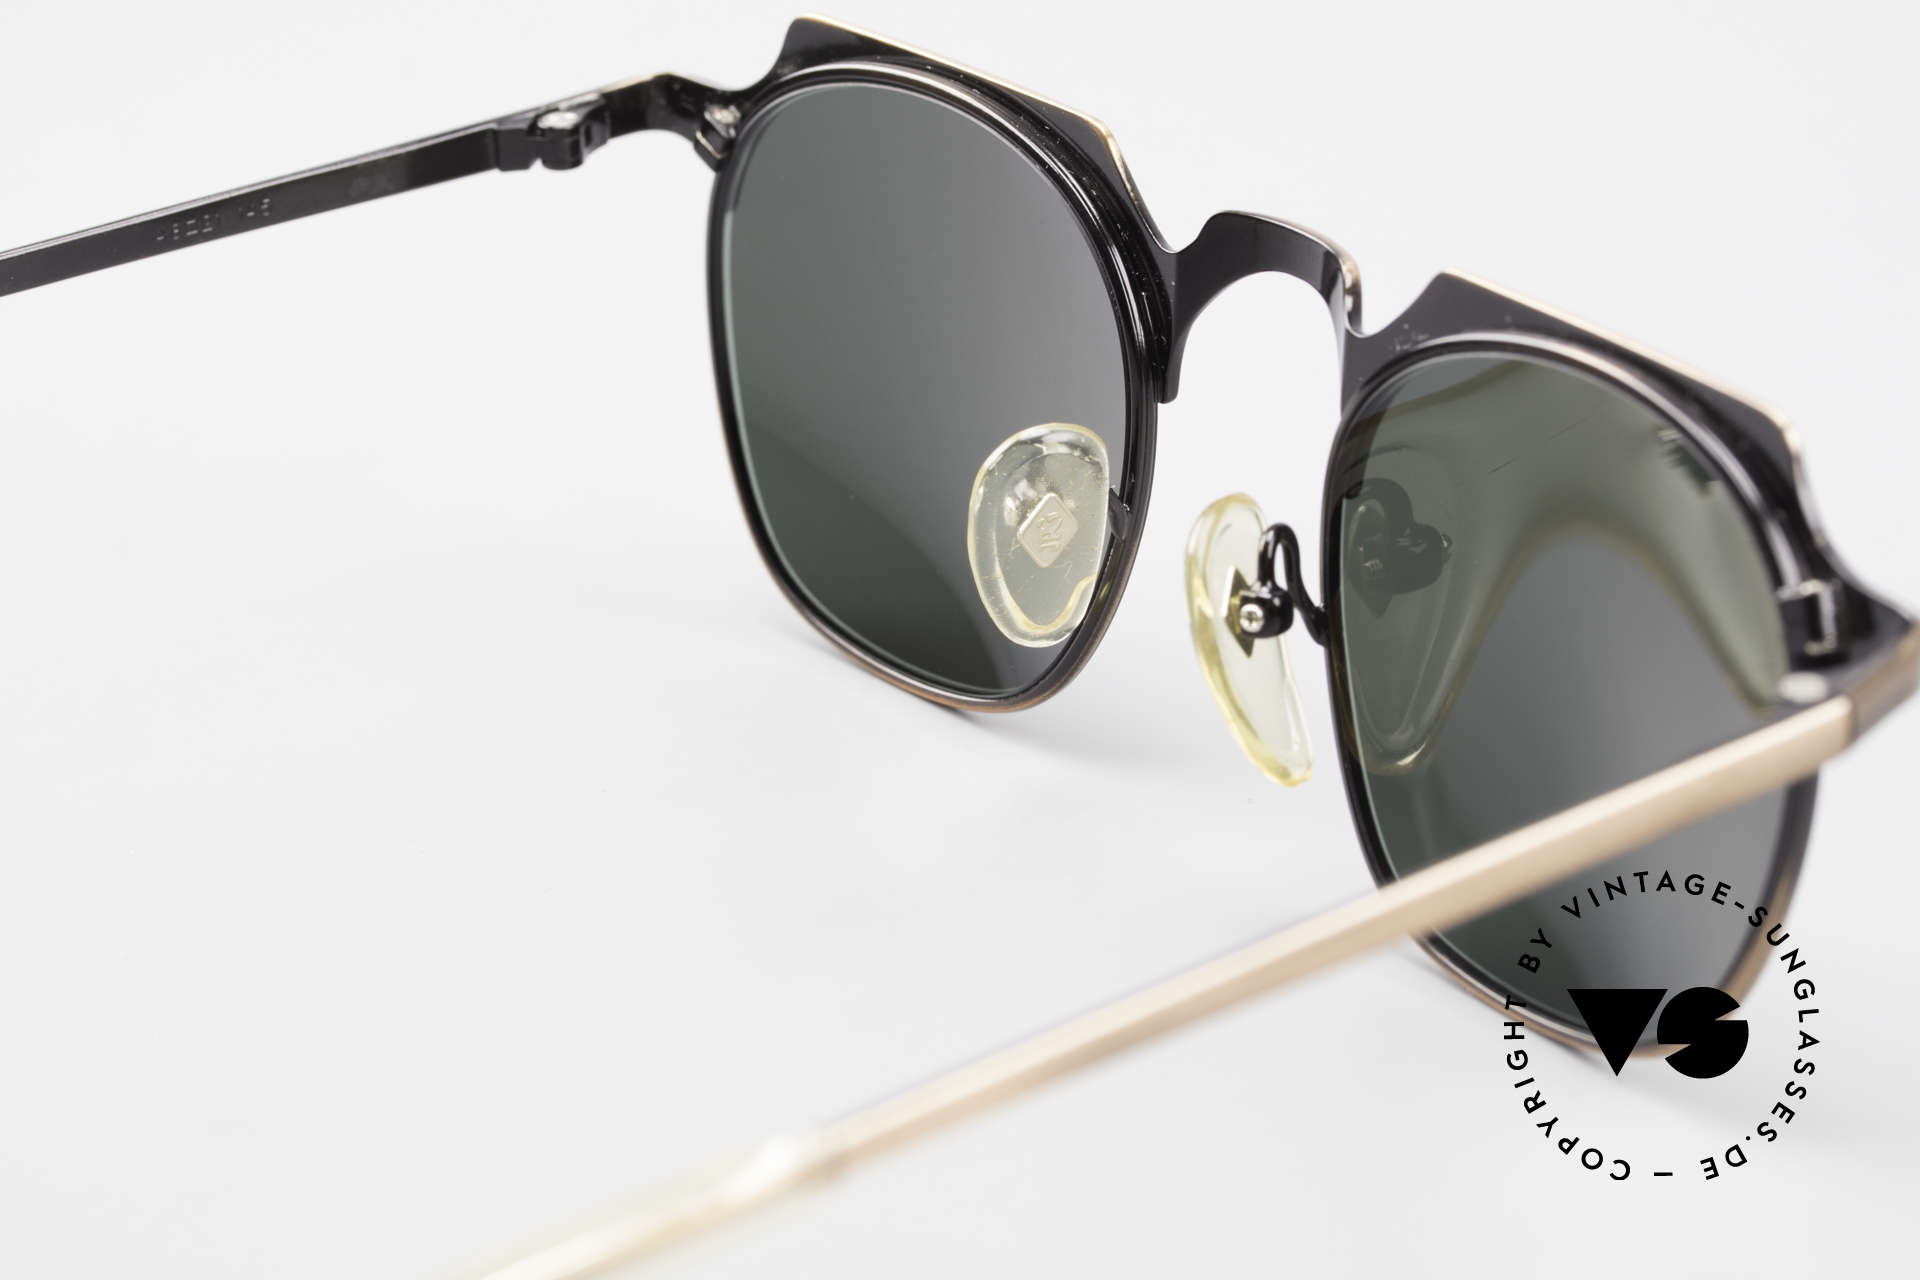 Jean Paul Gaultier 57-0171 Square Panto Sunglasses 90's, NO RETRO fashion, but a genuine 25 years old rarity, Made for Men